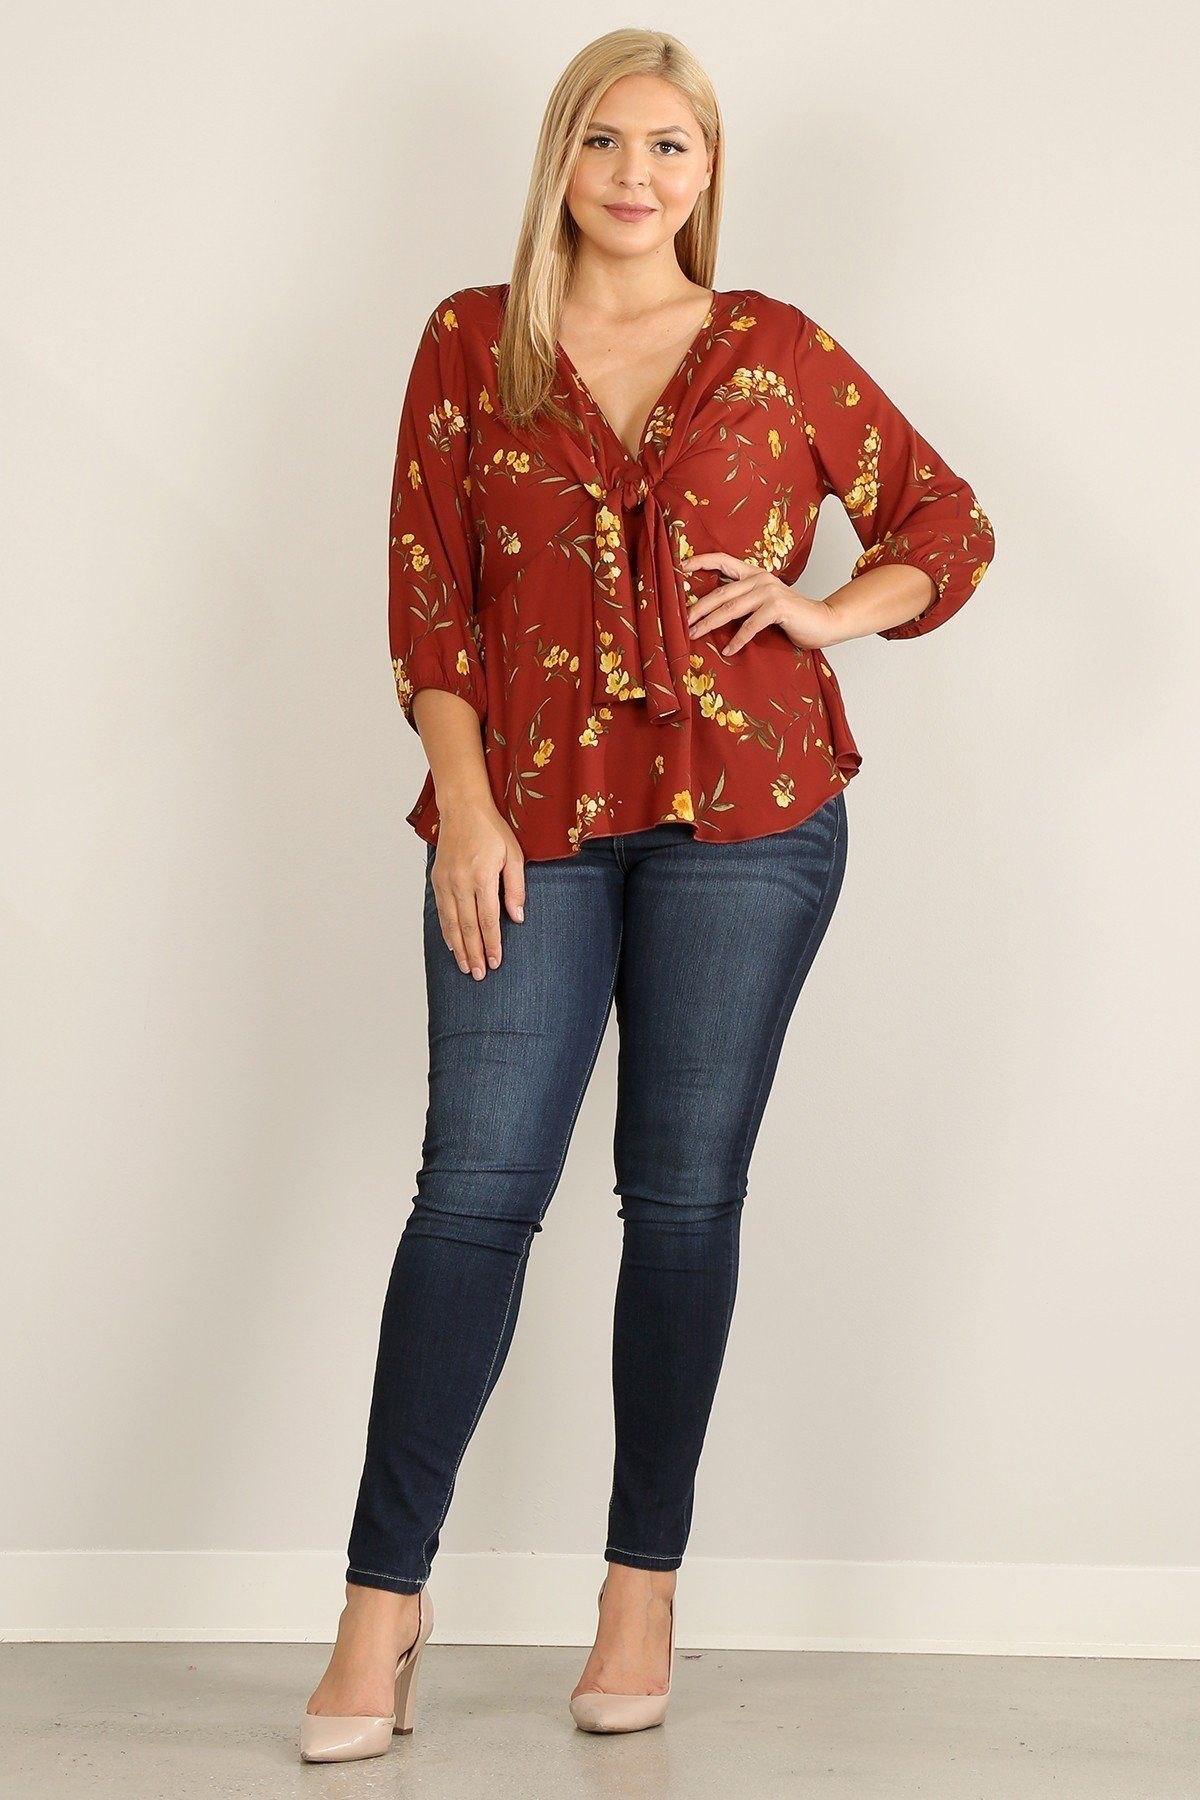 Plus Size Floral Print 3/4 Sleeve Top With V-neckline And Relaxed Fit